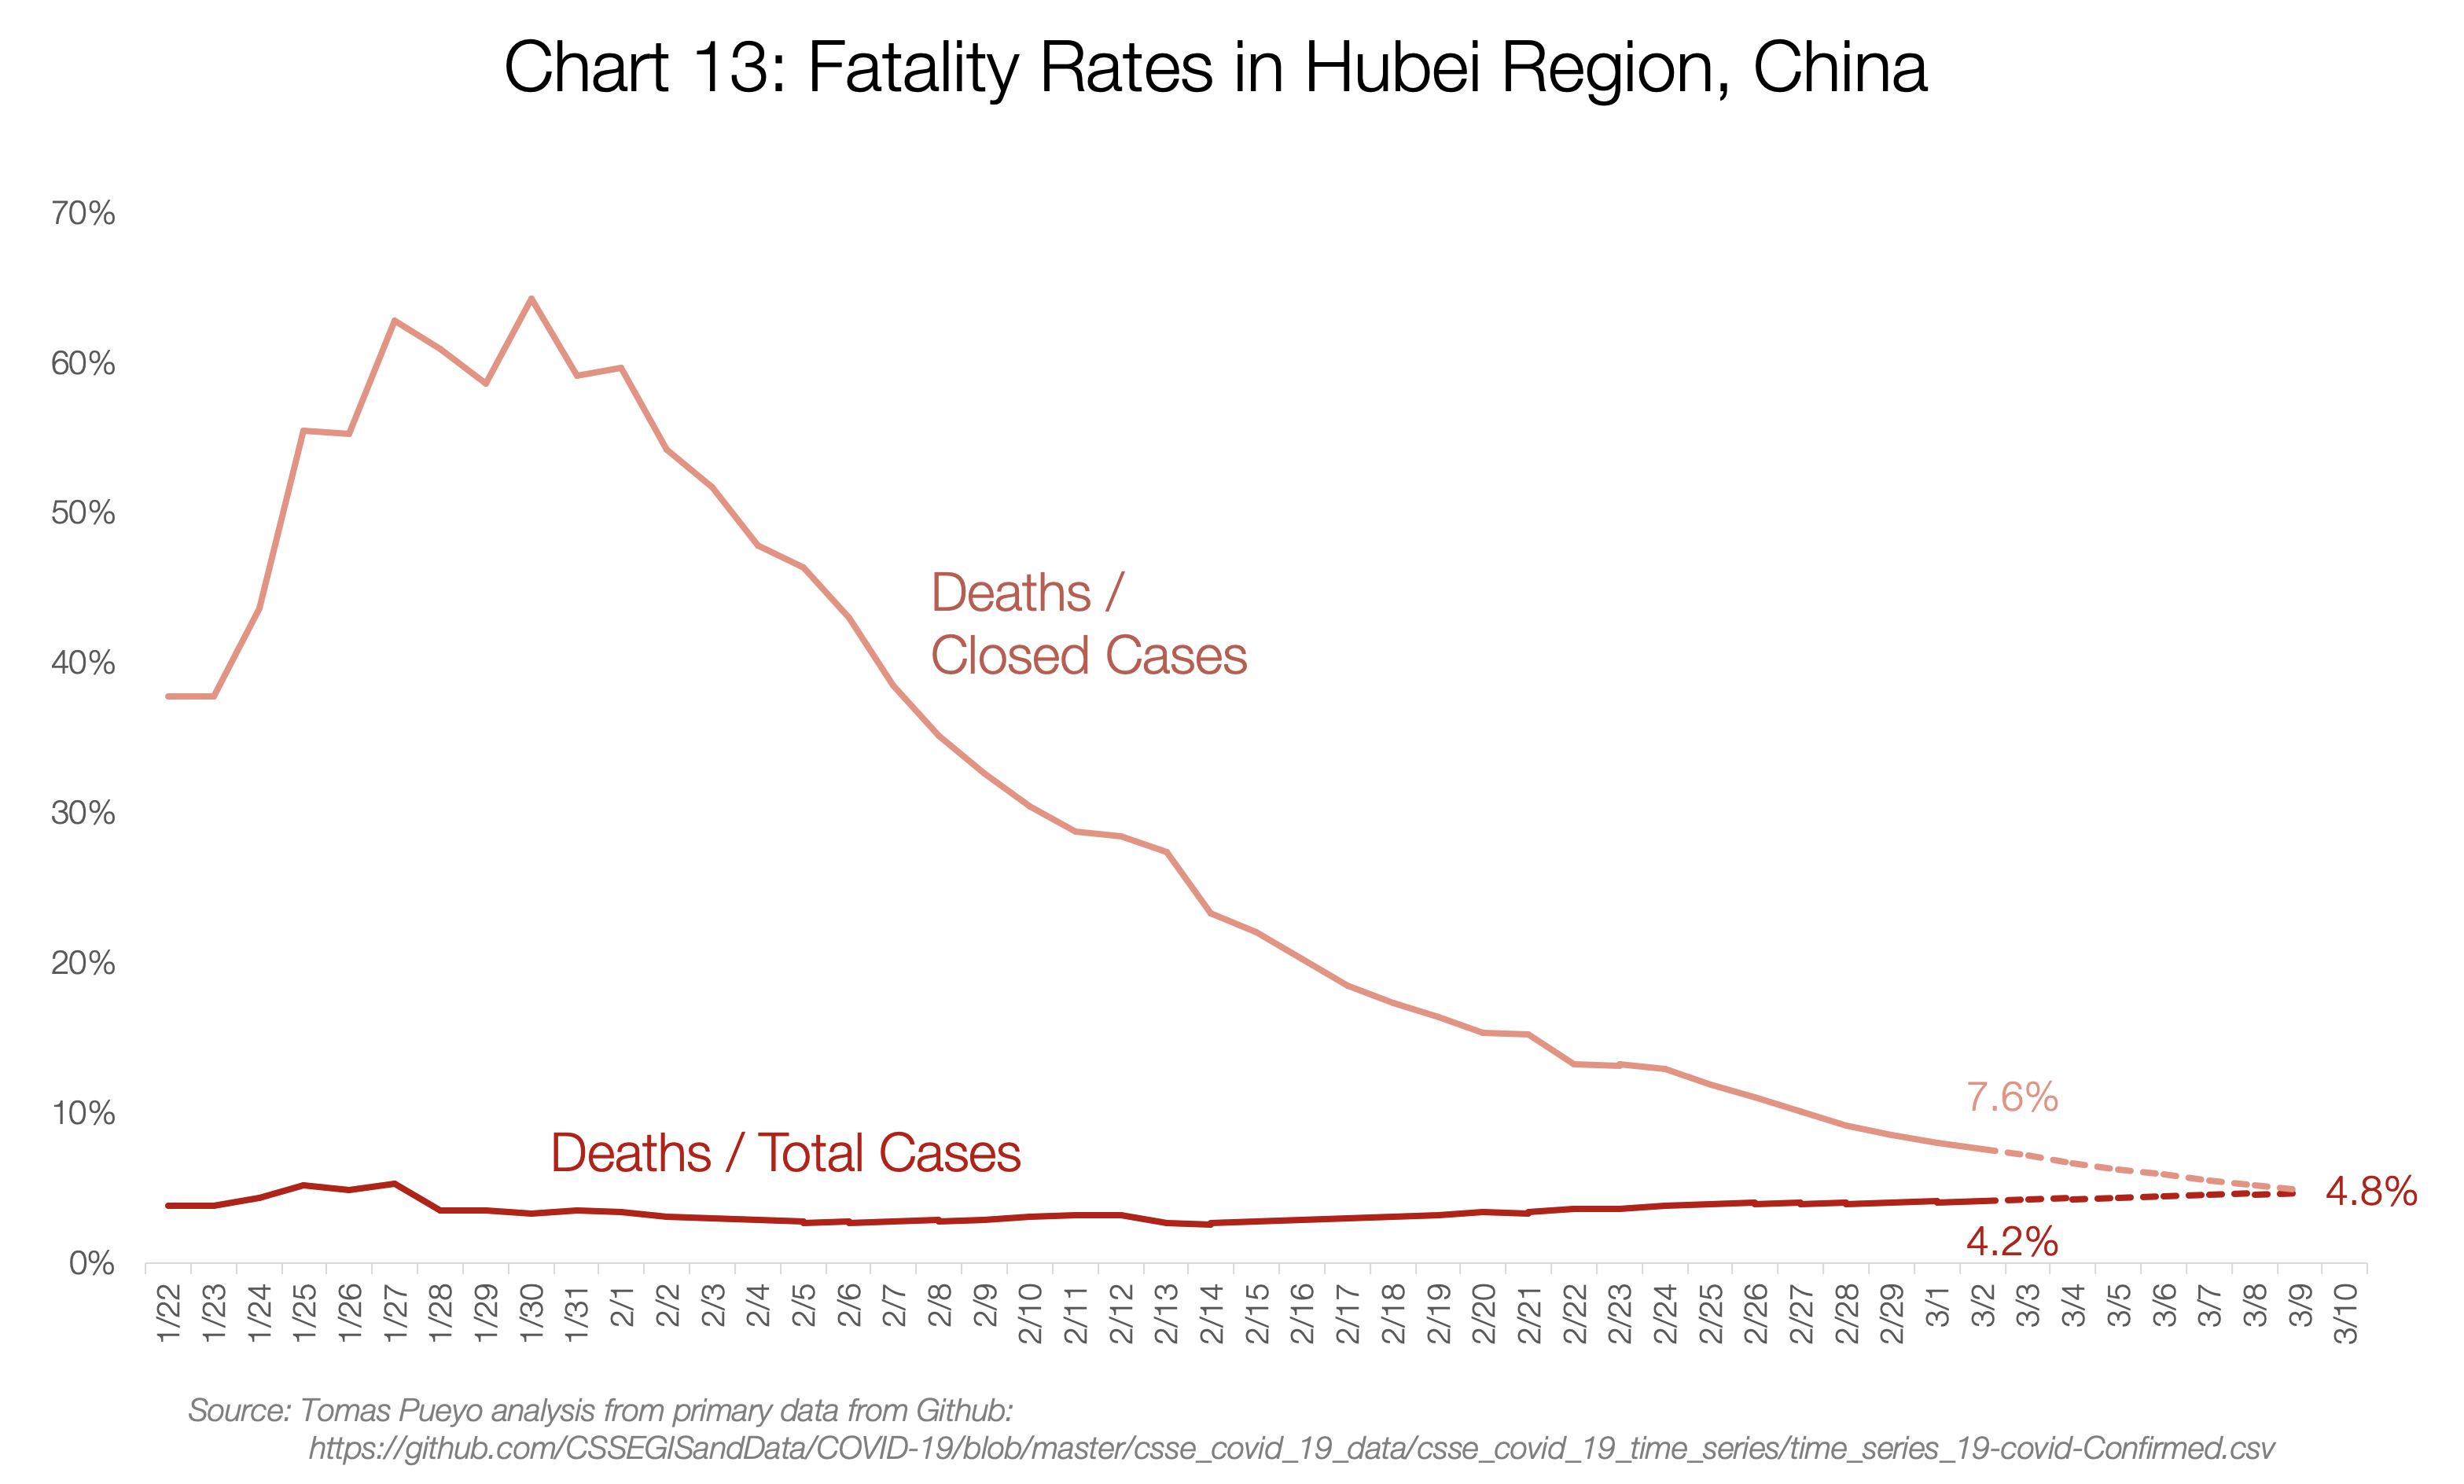 13. fatality rates in Hubei región China